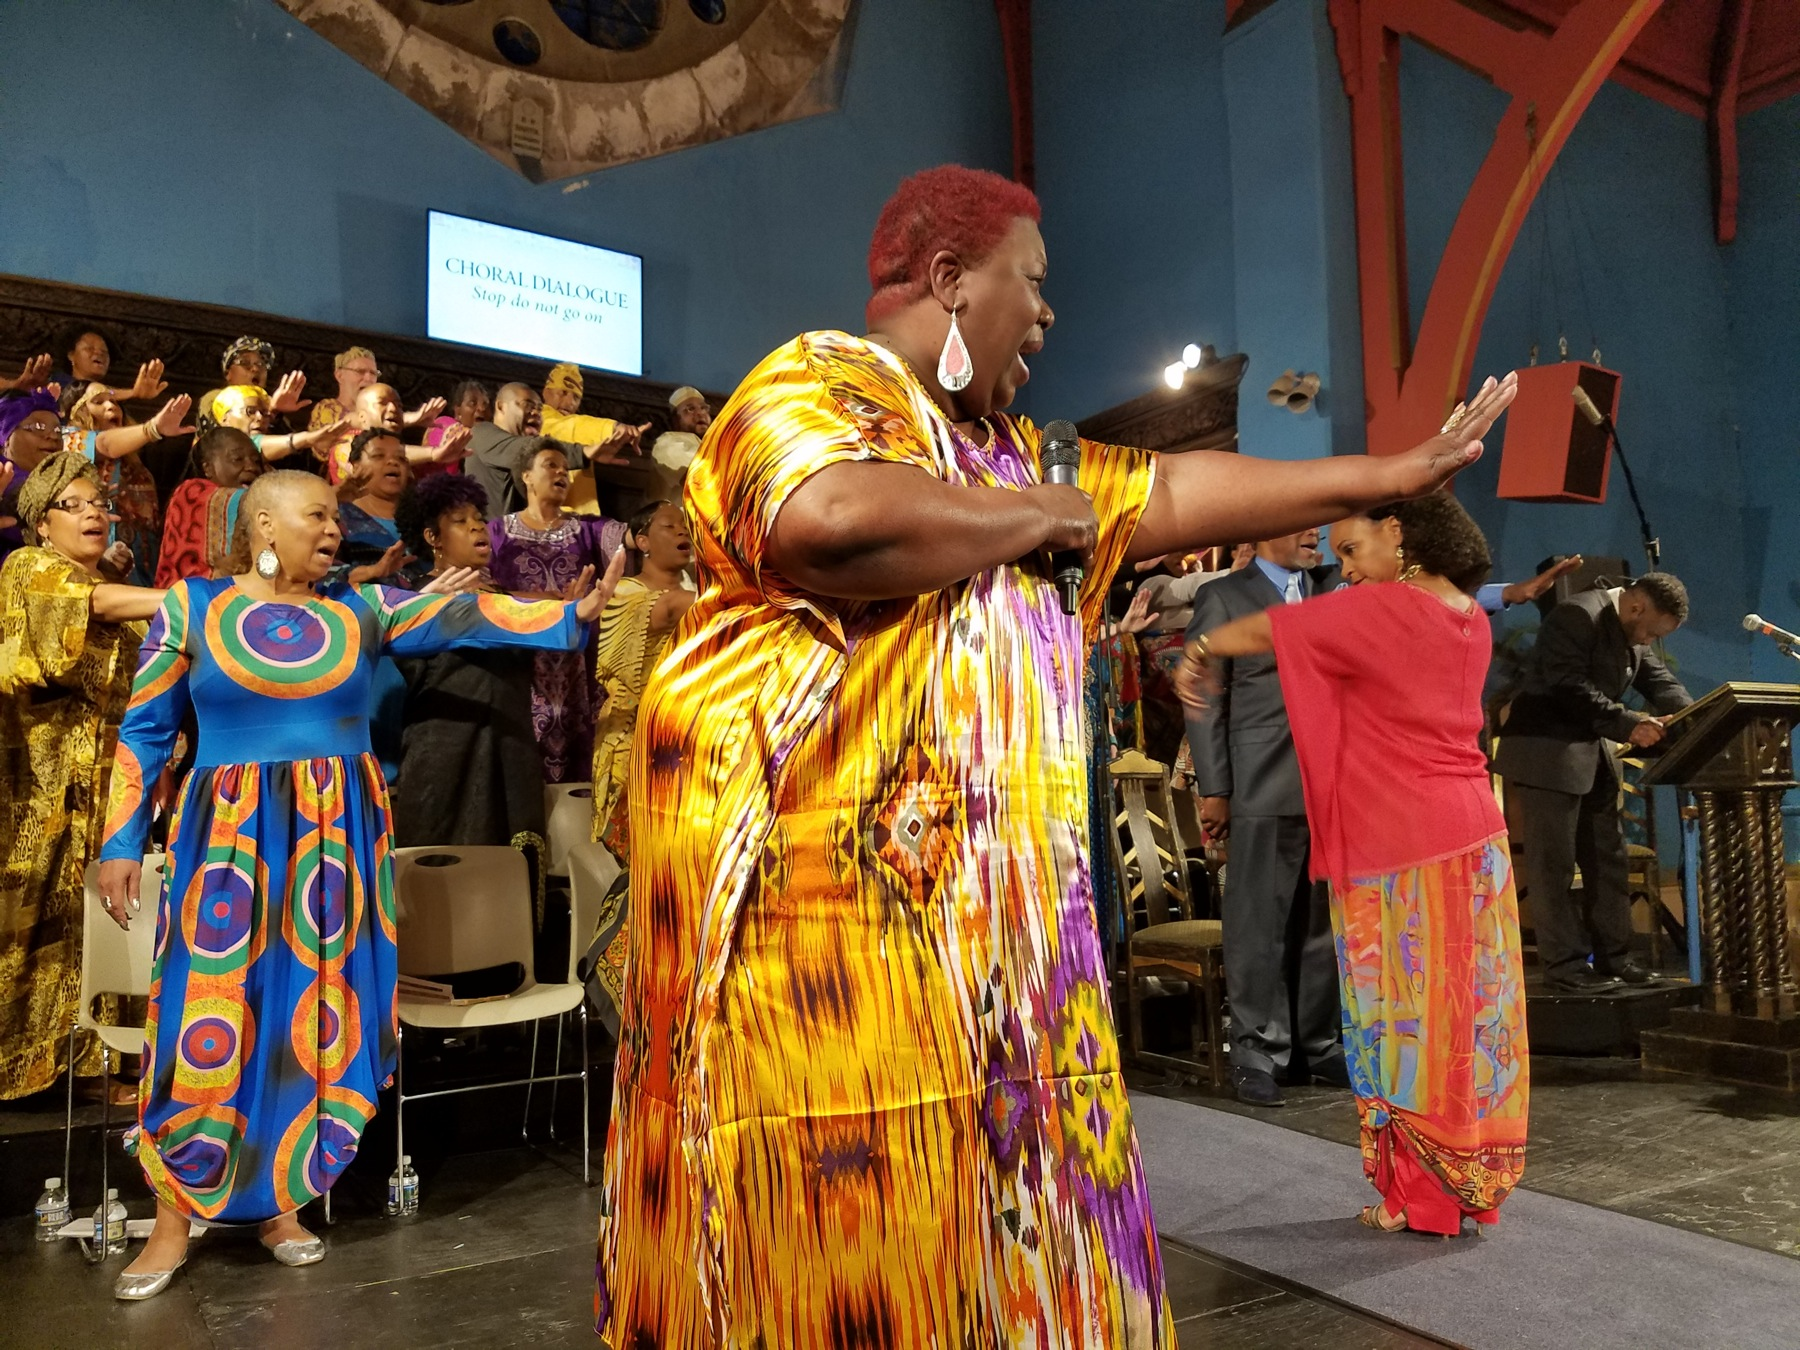 """Audrey Mickell sings """"Stop Do Not Go On"""" as the character Choragos in the musical """"The Gospel at Colonus"""" at the First Unitarian Church on Chestnut Street in Philadelphia."""